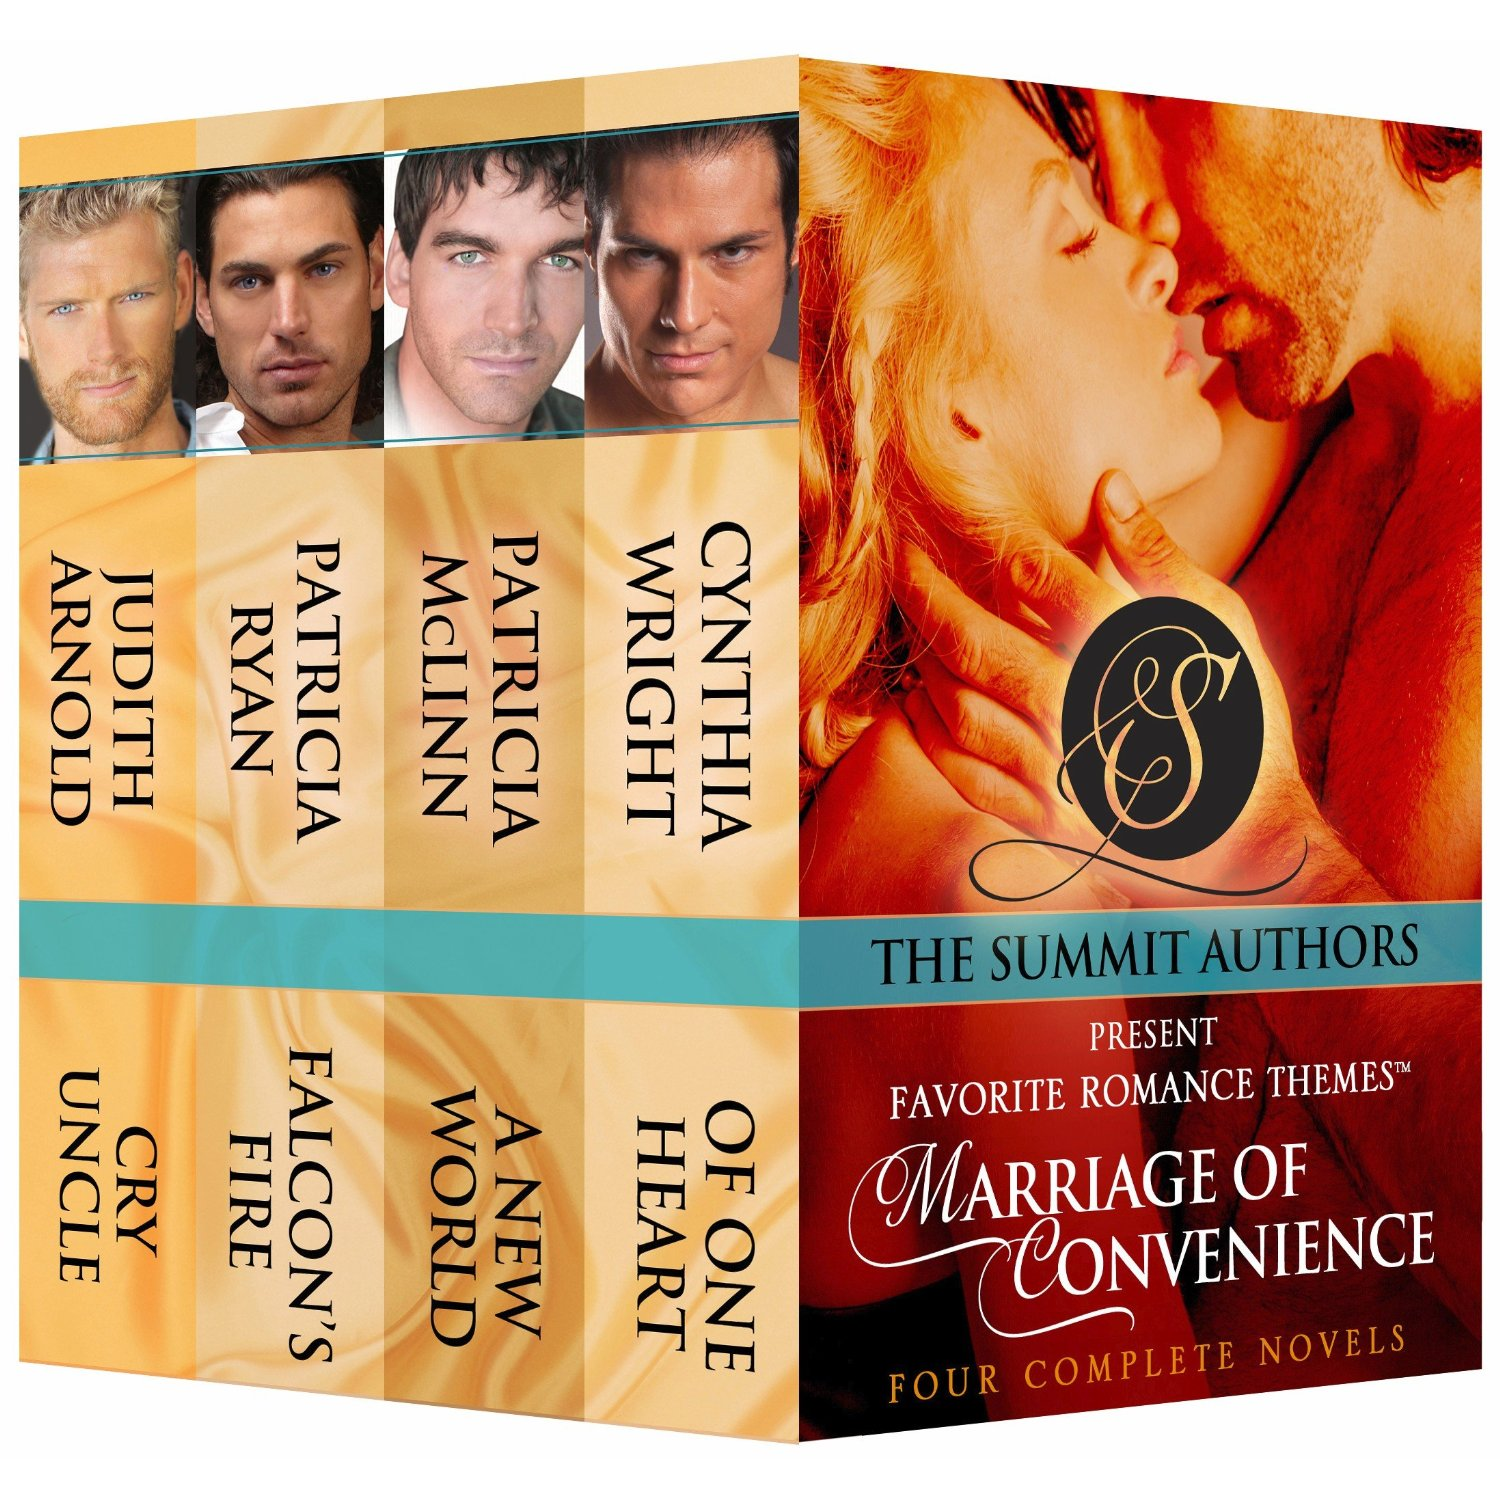 marriage of convenience A marriage of convenience - a woman (jane seymour) raises her sister's child alone, then contends with the boy's father (james brolin) years later when.